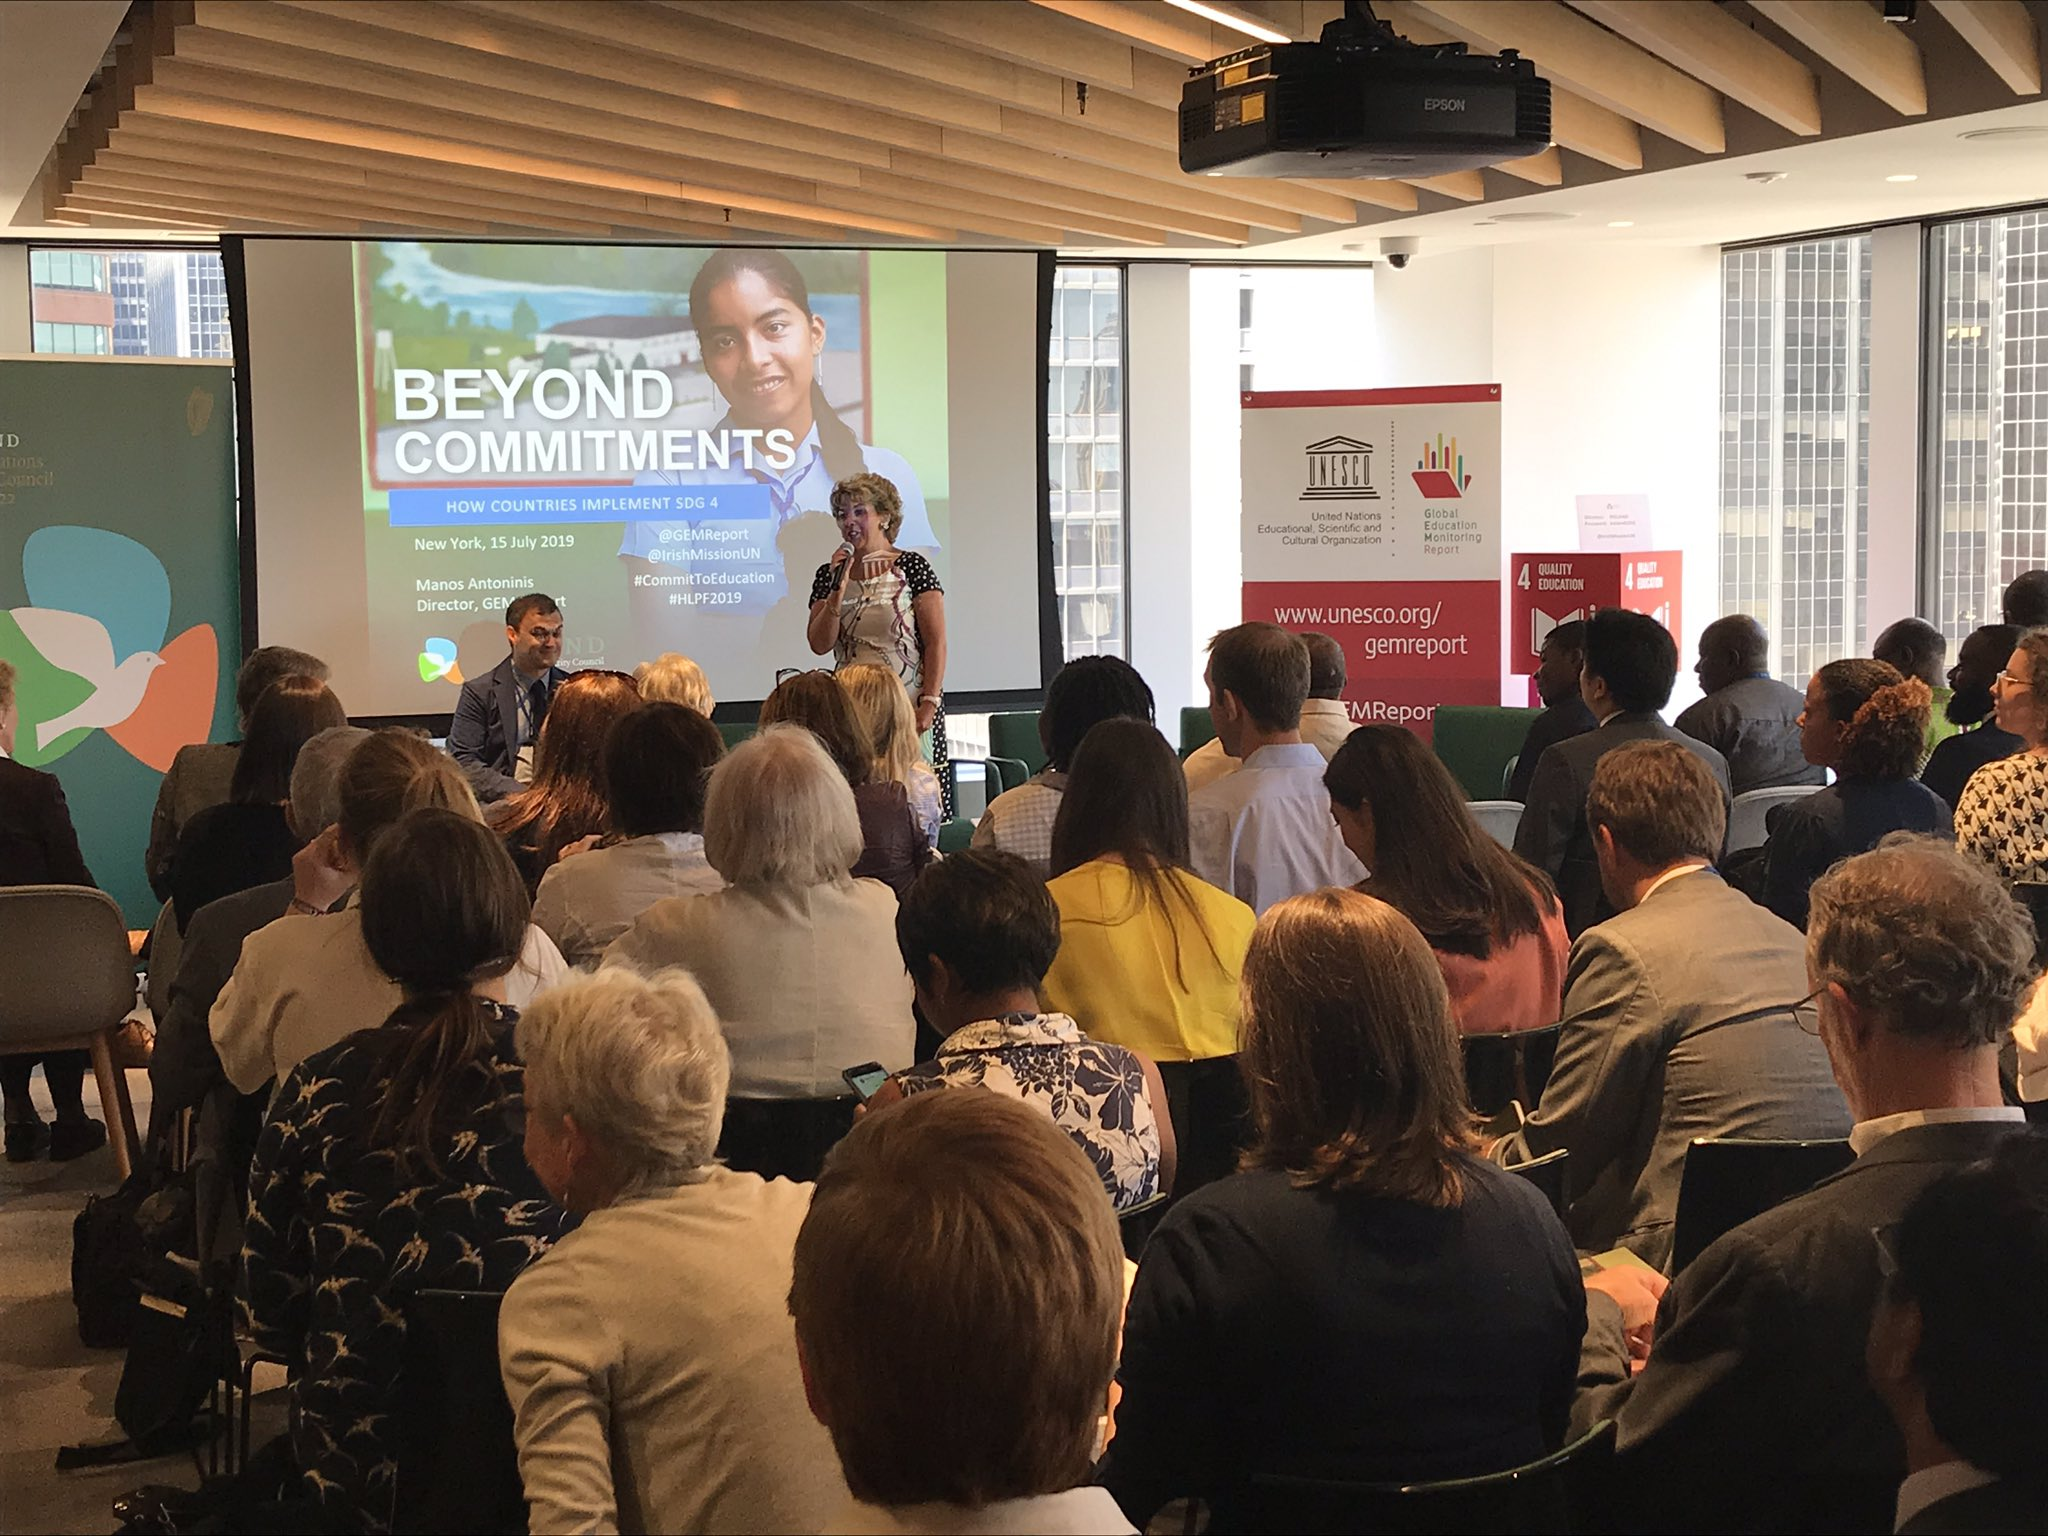 We're partnering with @UNESCO on today's #HLPF2019 event to launch a special @GEMReport on implementing #SDG4.  Full house here to engage on how we can #CommittoEducation & achieve #SDG4! #Ireland4SDGs https://t.co/aKhYAzlWjc